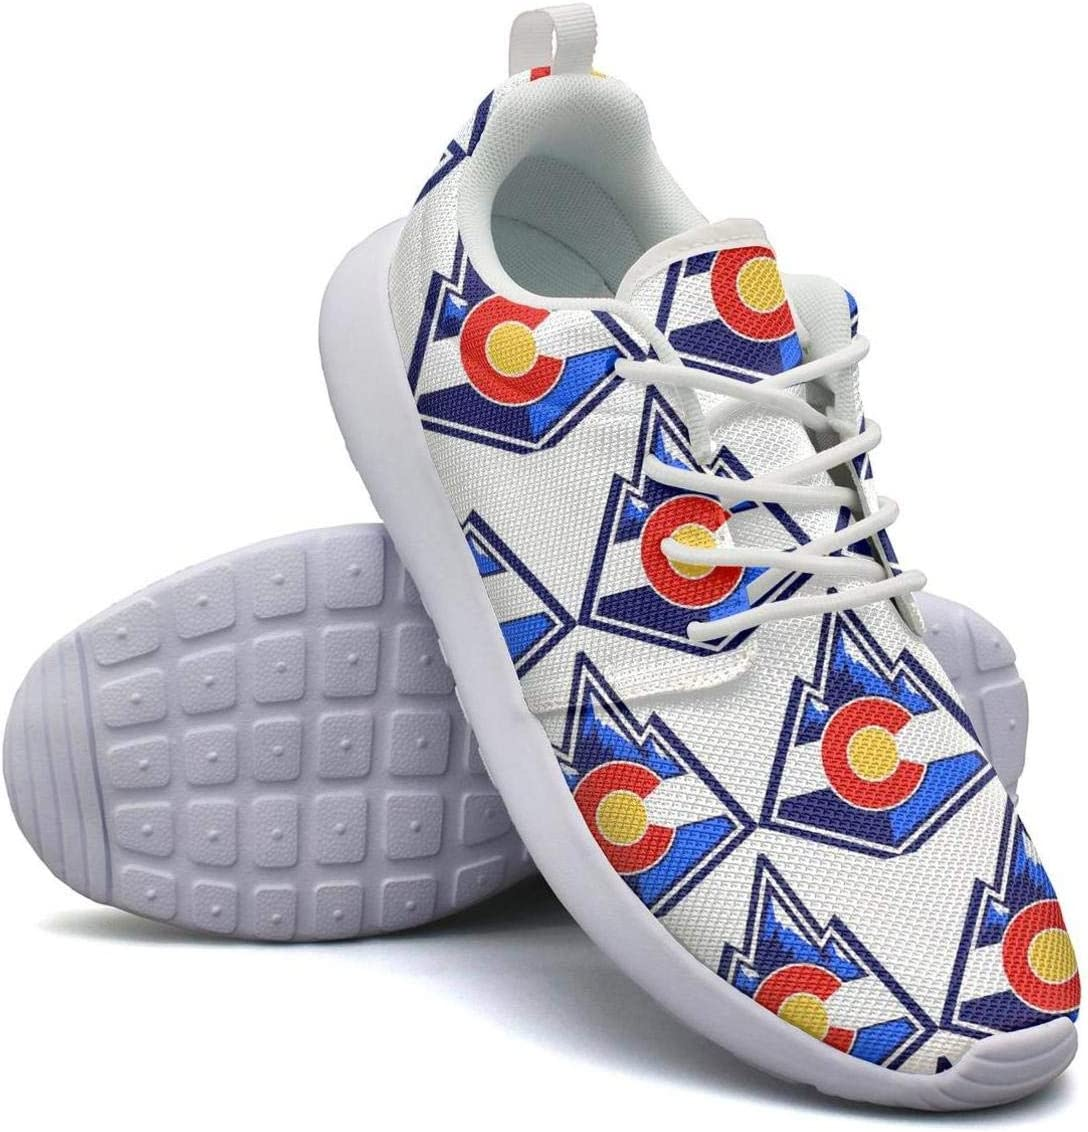 VXCVF Colorado Flag Womens Lace-up Sneaker Shock Absorption Cool